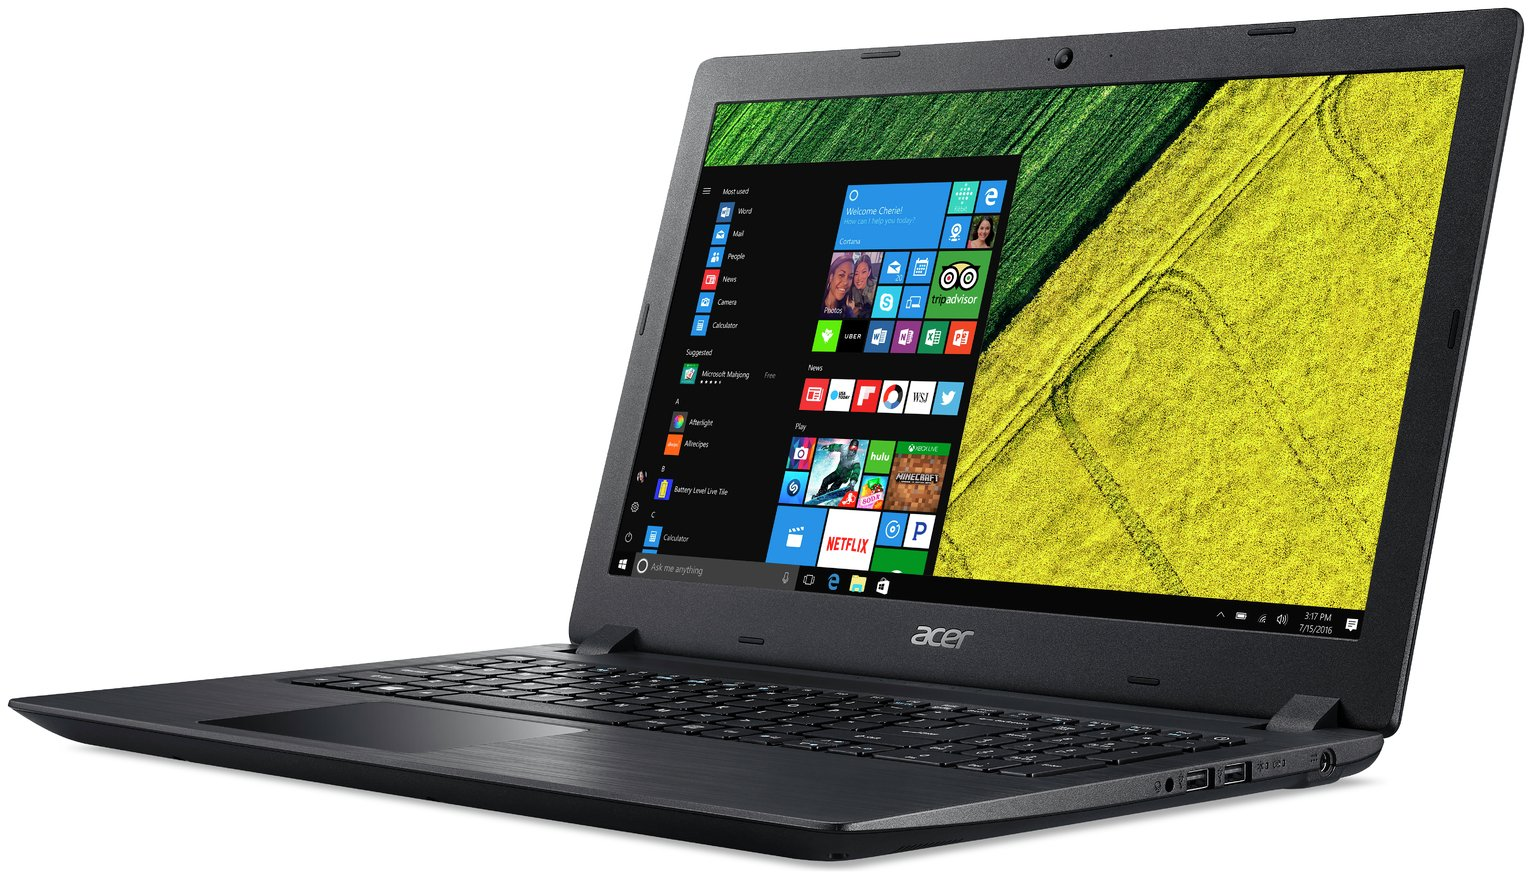 Acer 15.6 Inch i3 4GB 128GB Laptop - Black